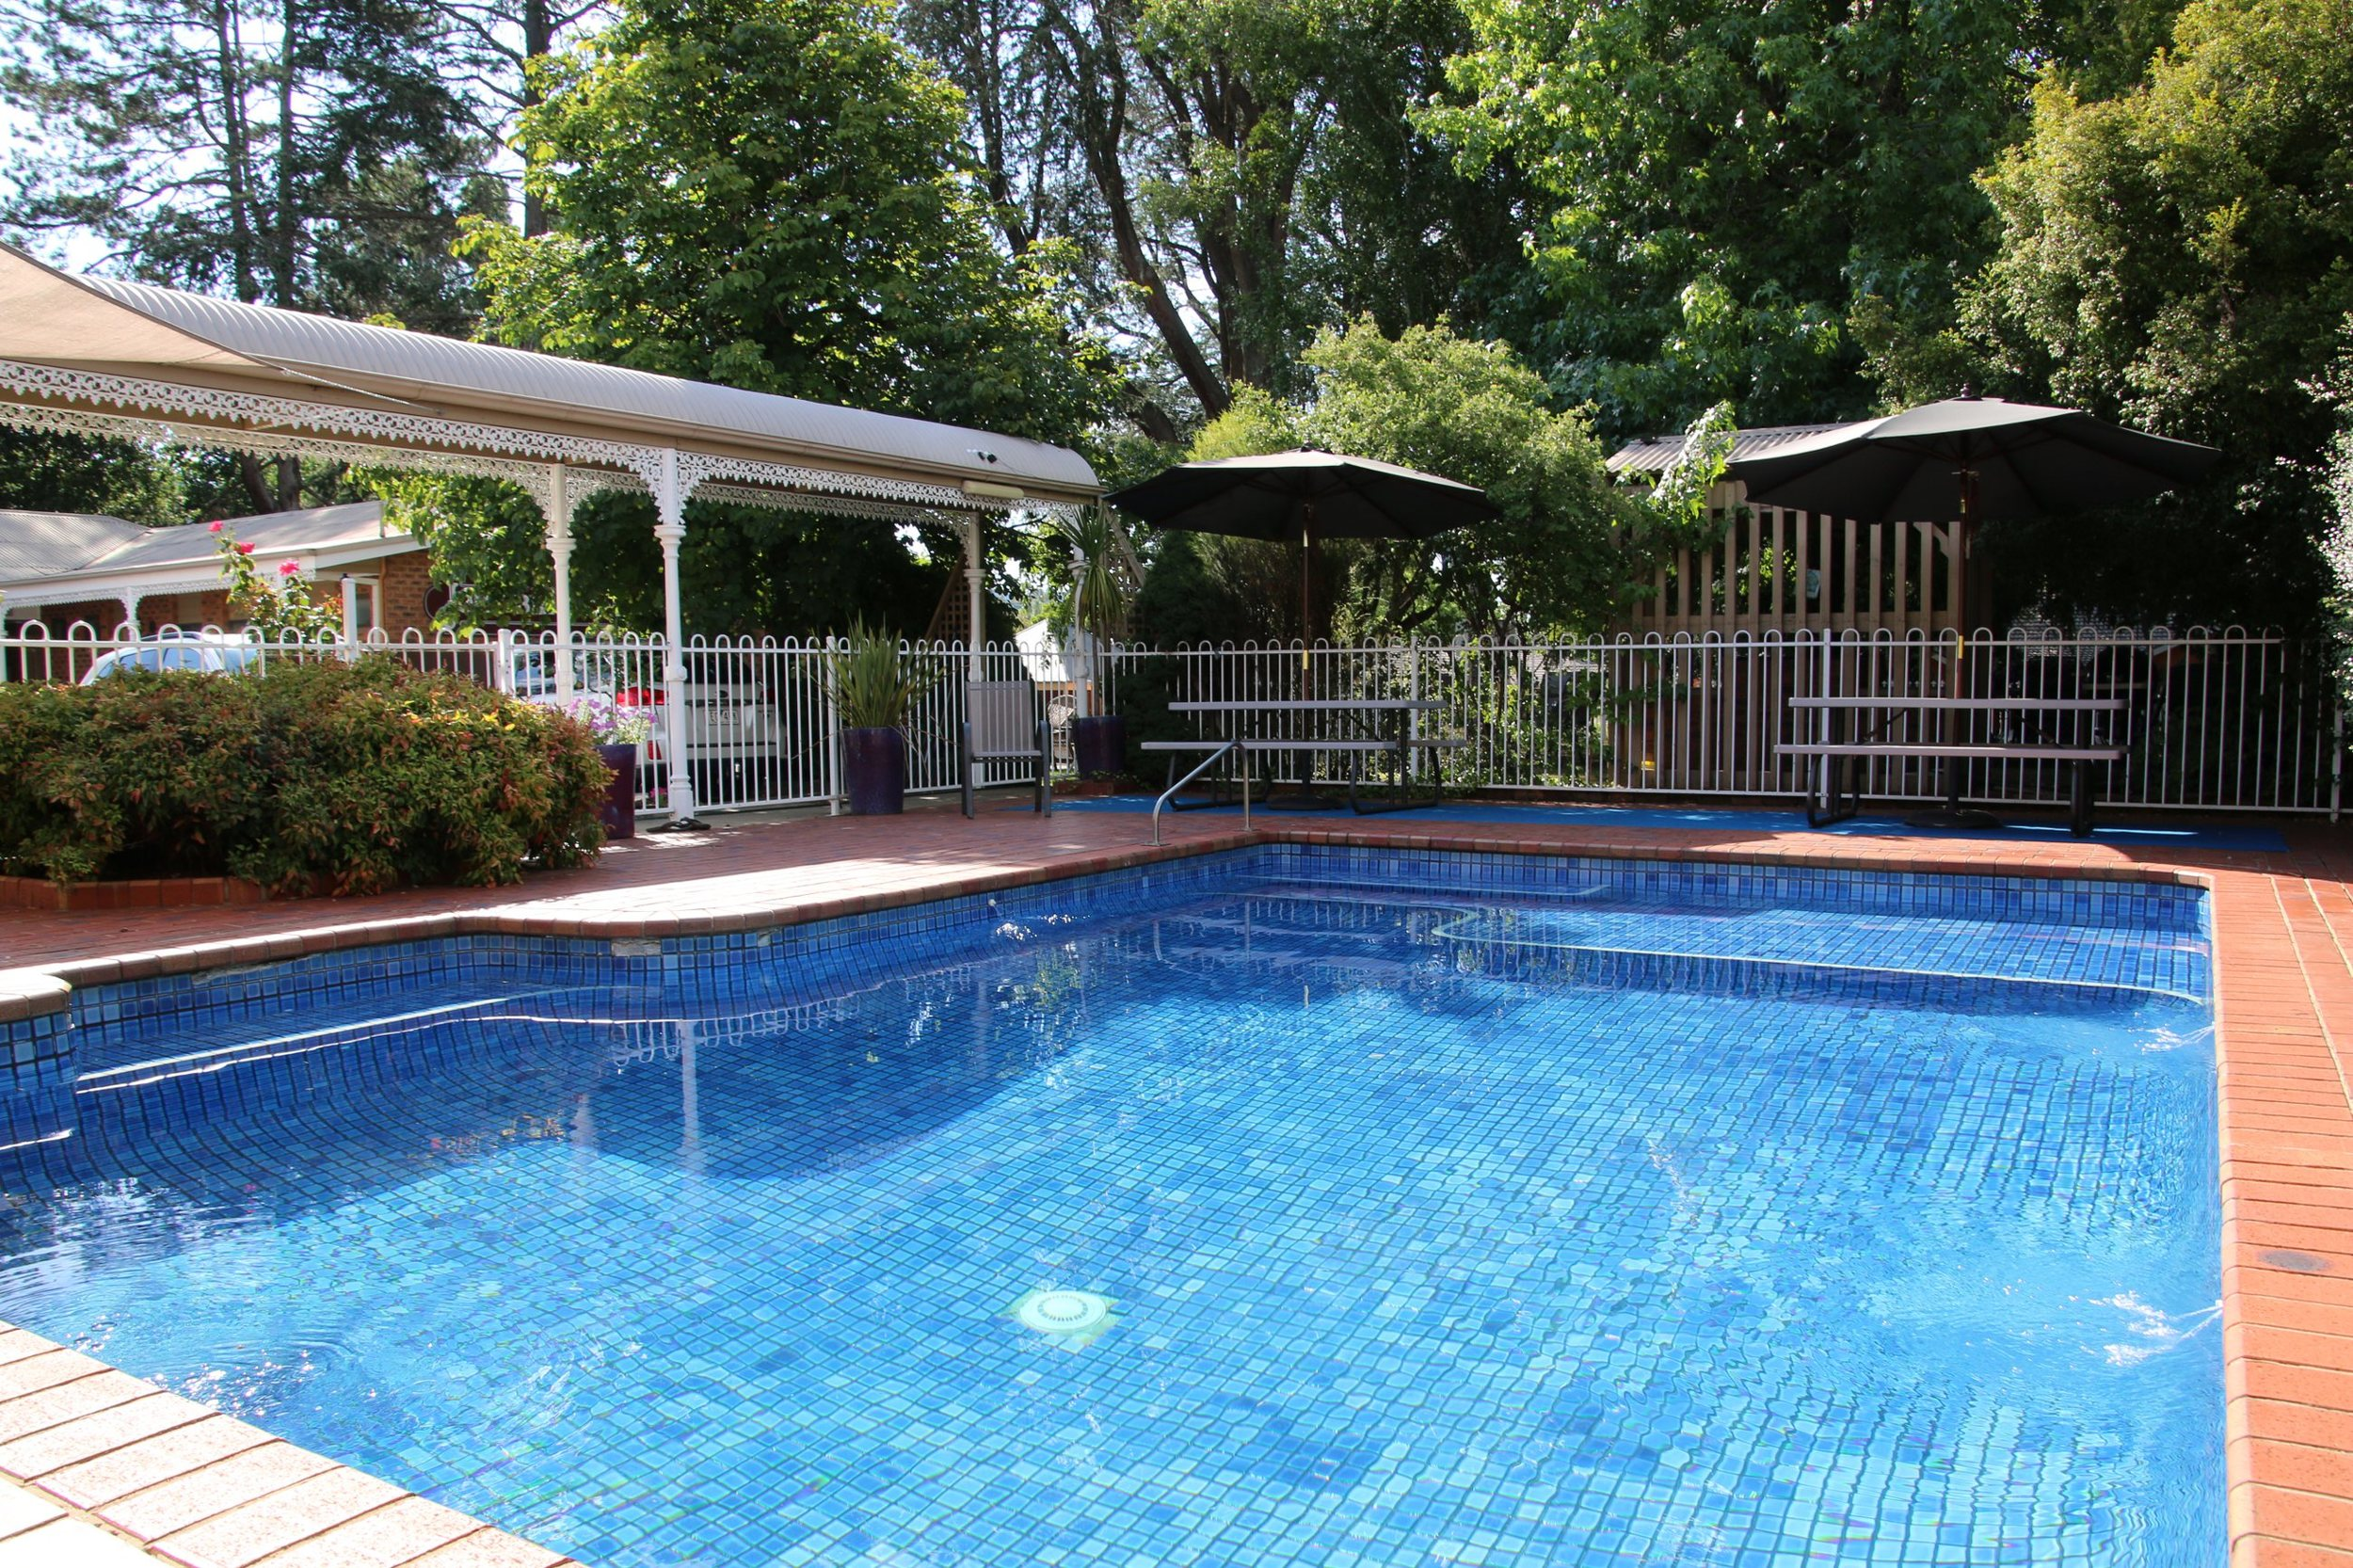 John Bright Motor Inn - pool and outdoor spa (not heated) located in a sunny spot.